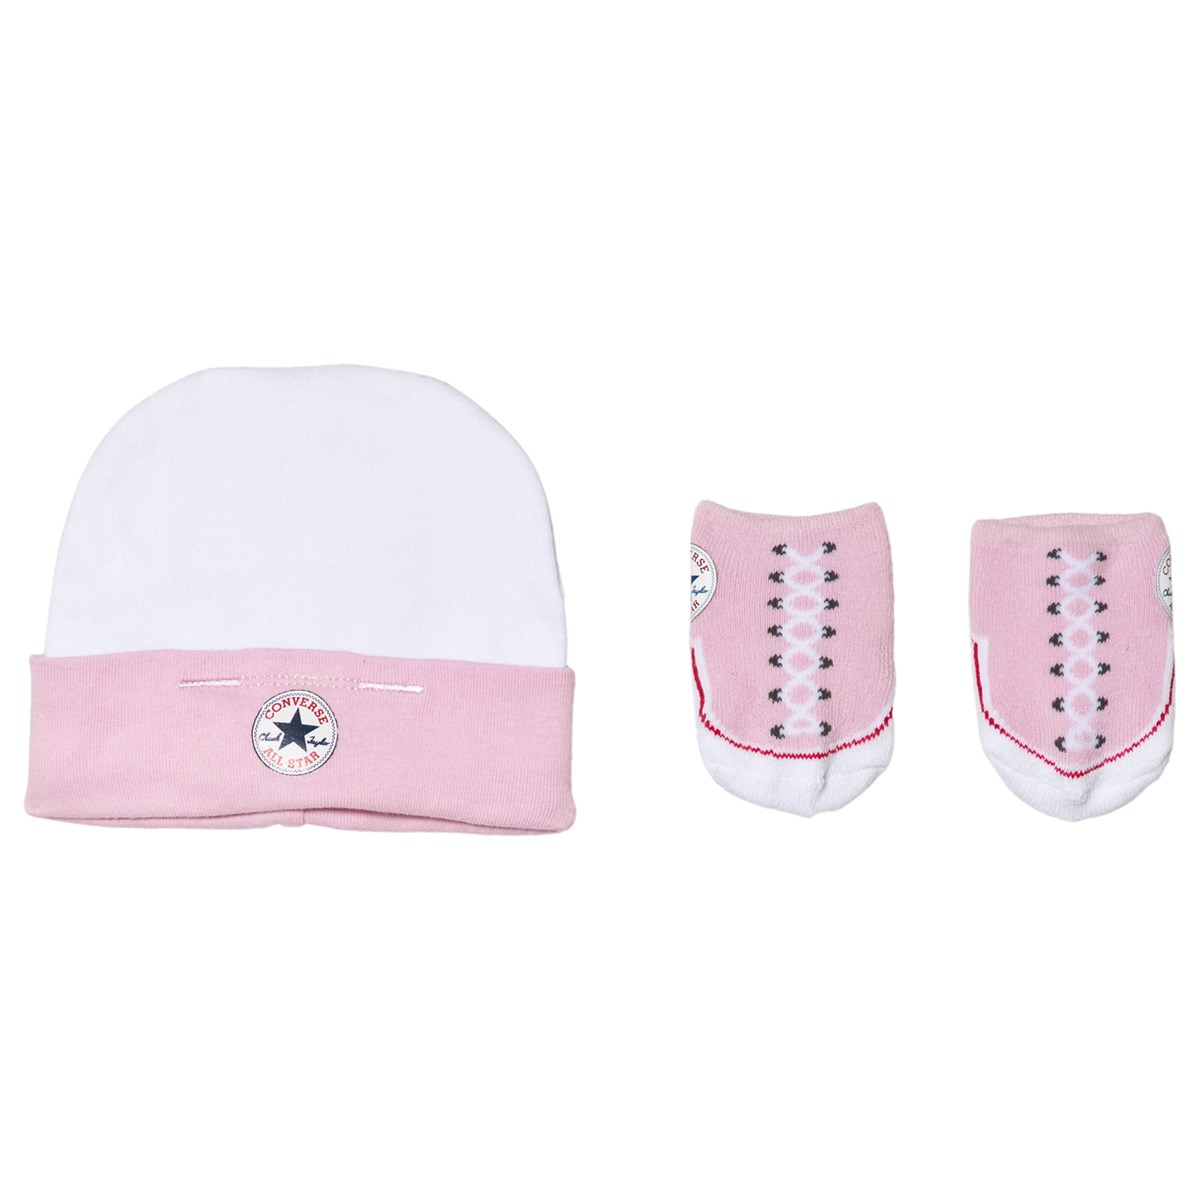 Converse - Pink Hat and Booties Set - Babyshop.com 466a348314